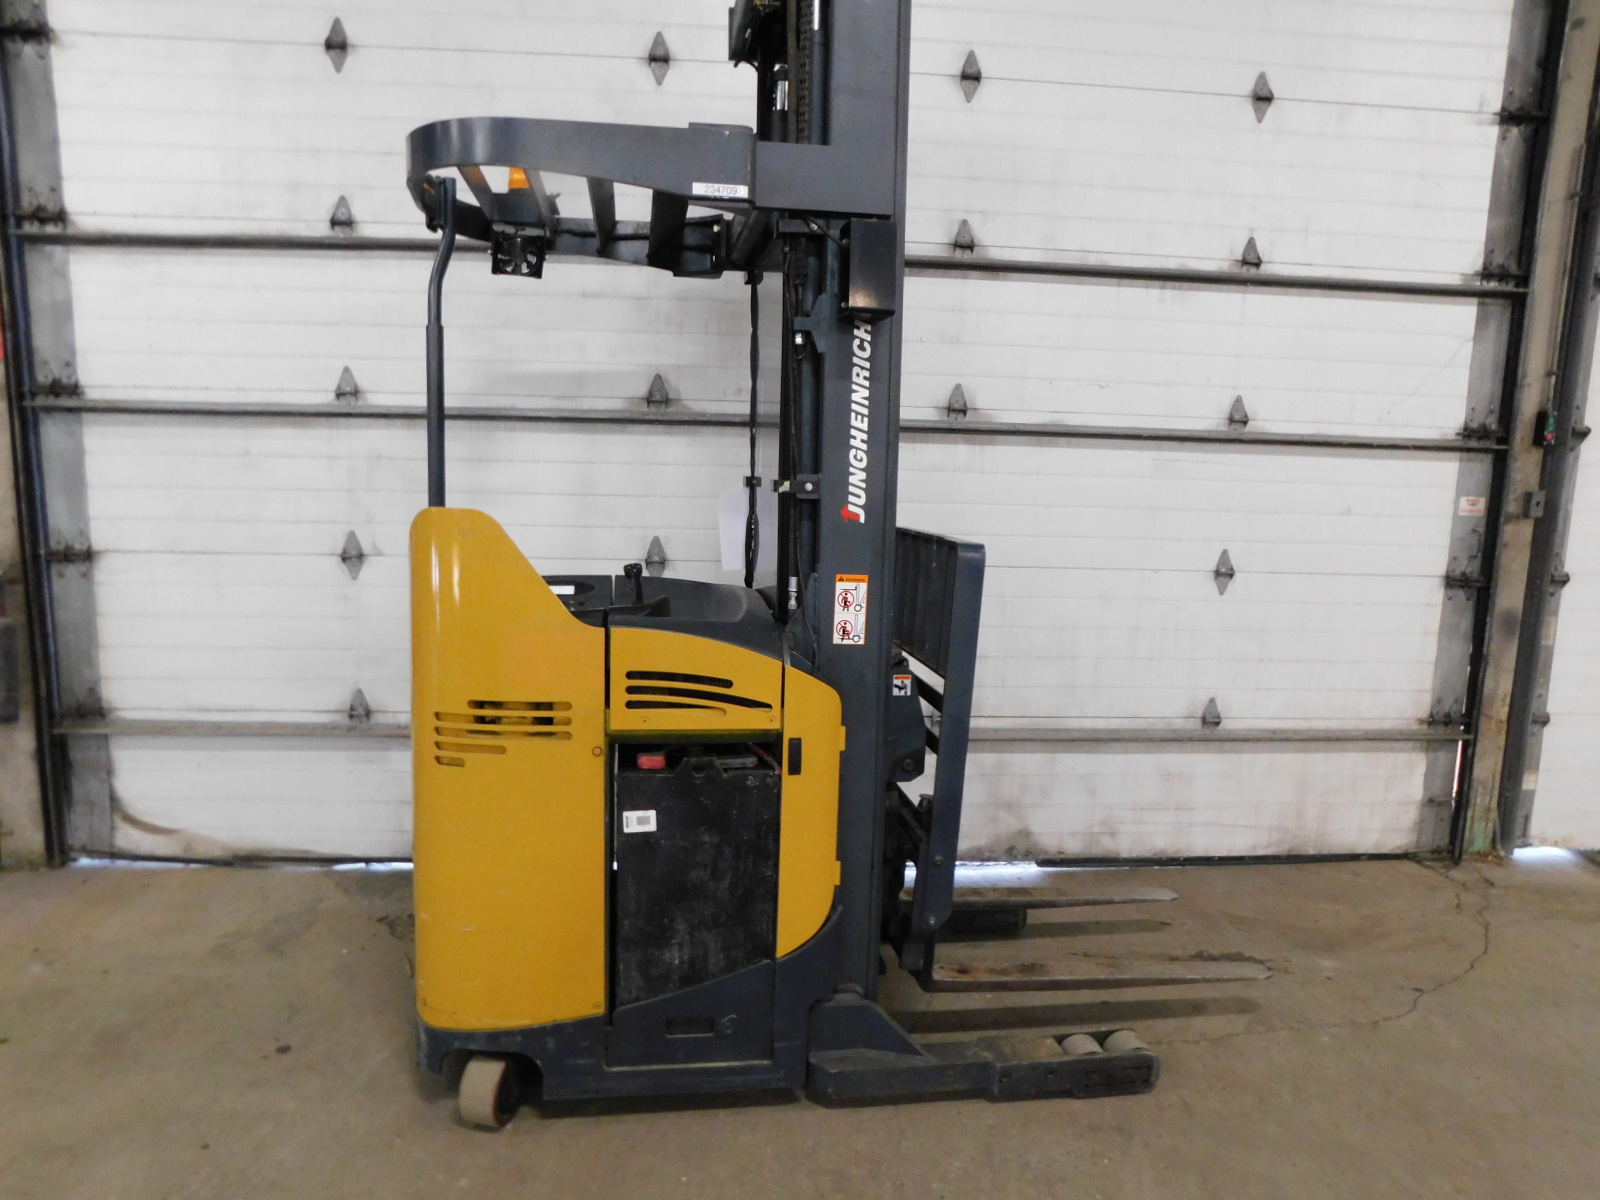 Used Electric Reach Truck for sale. 4000lb stand up forklift.